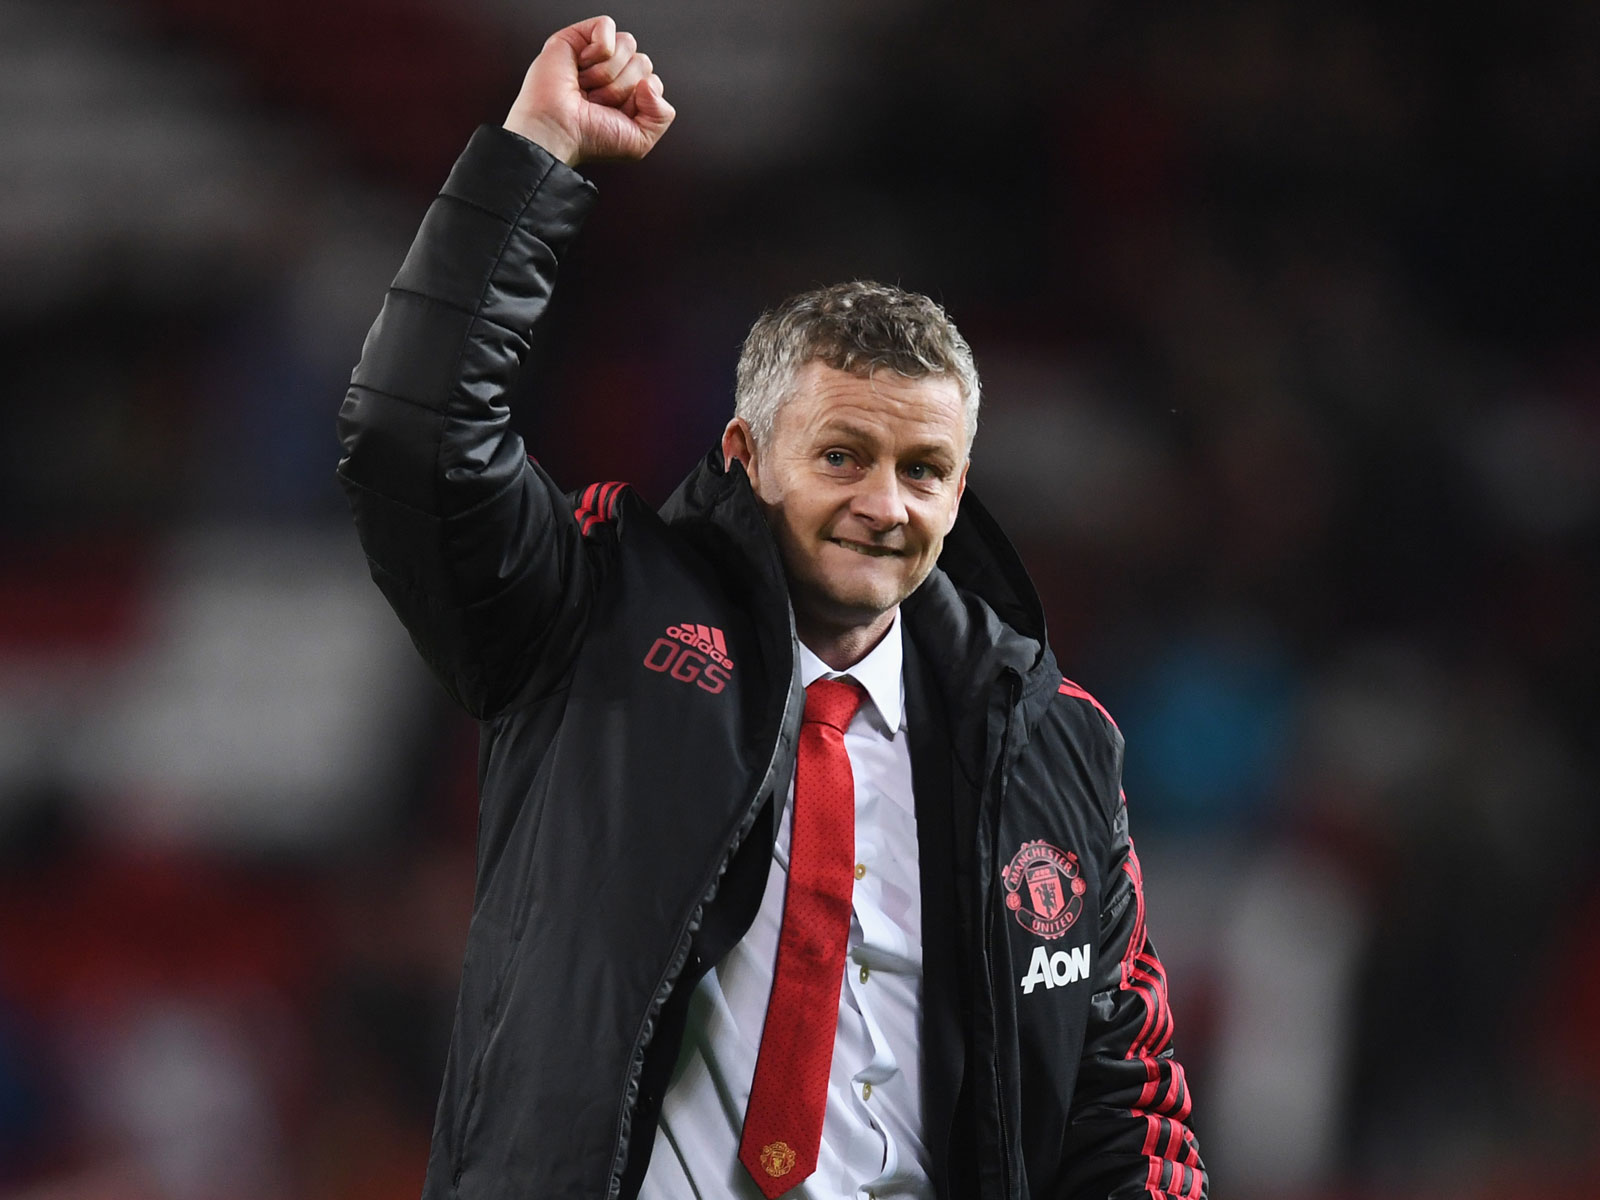 Ole Gunnar Solskjaer has won his first three games in charge at Man United